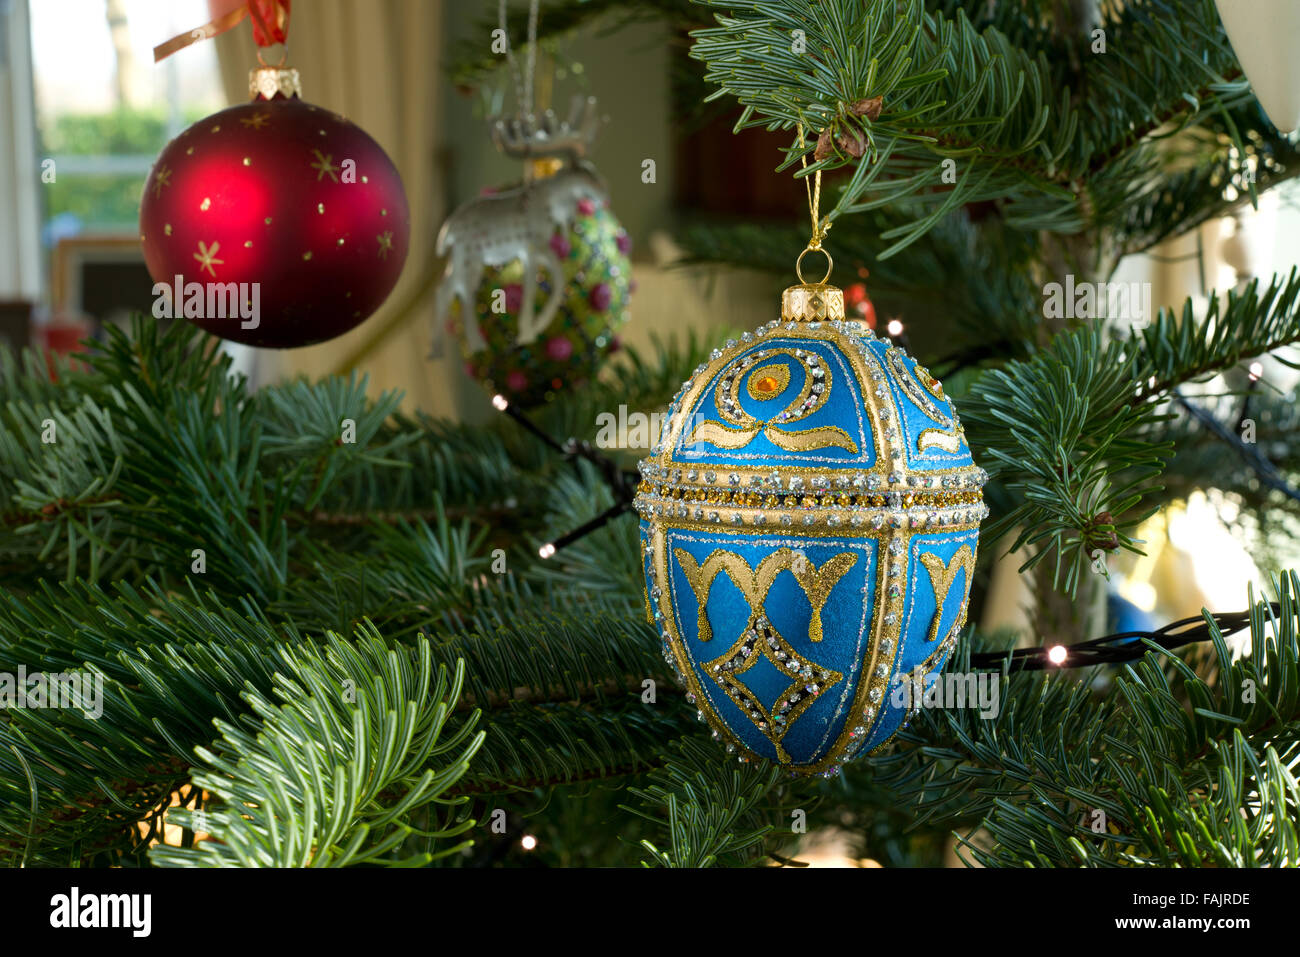 Christmas decorations on a Spruce Christmas Tree. Blue and gold bejeweled egg with other baubles. Stock Photo